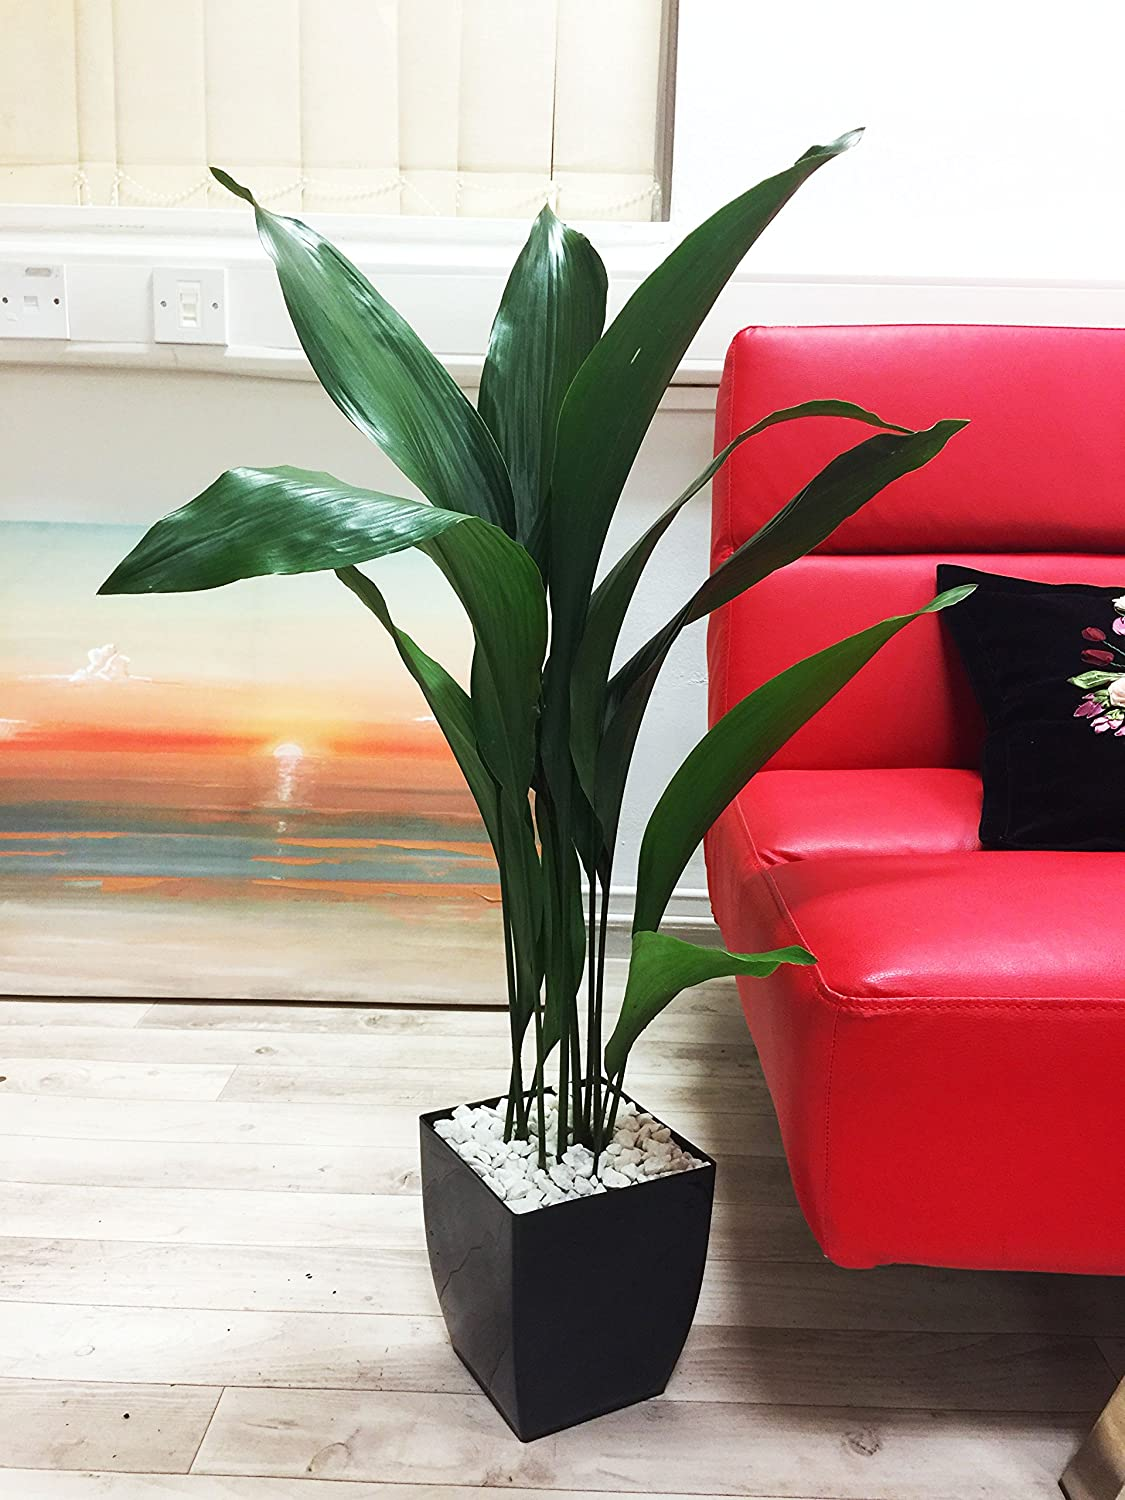 Easy Plants® Large Cast Iron Plant Common Aspidistra Table Plant @ Gloss Black Milano Square Pot